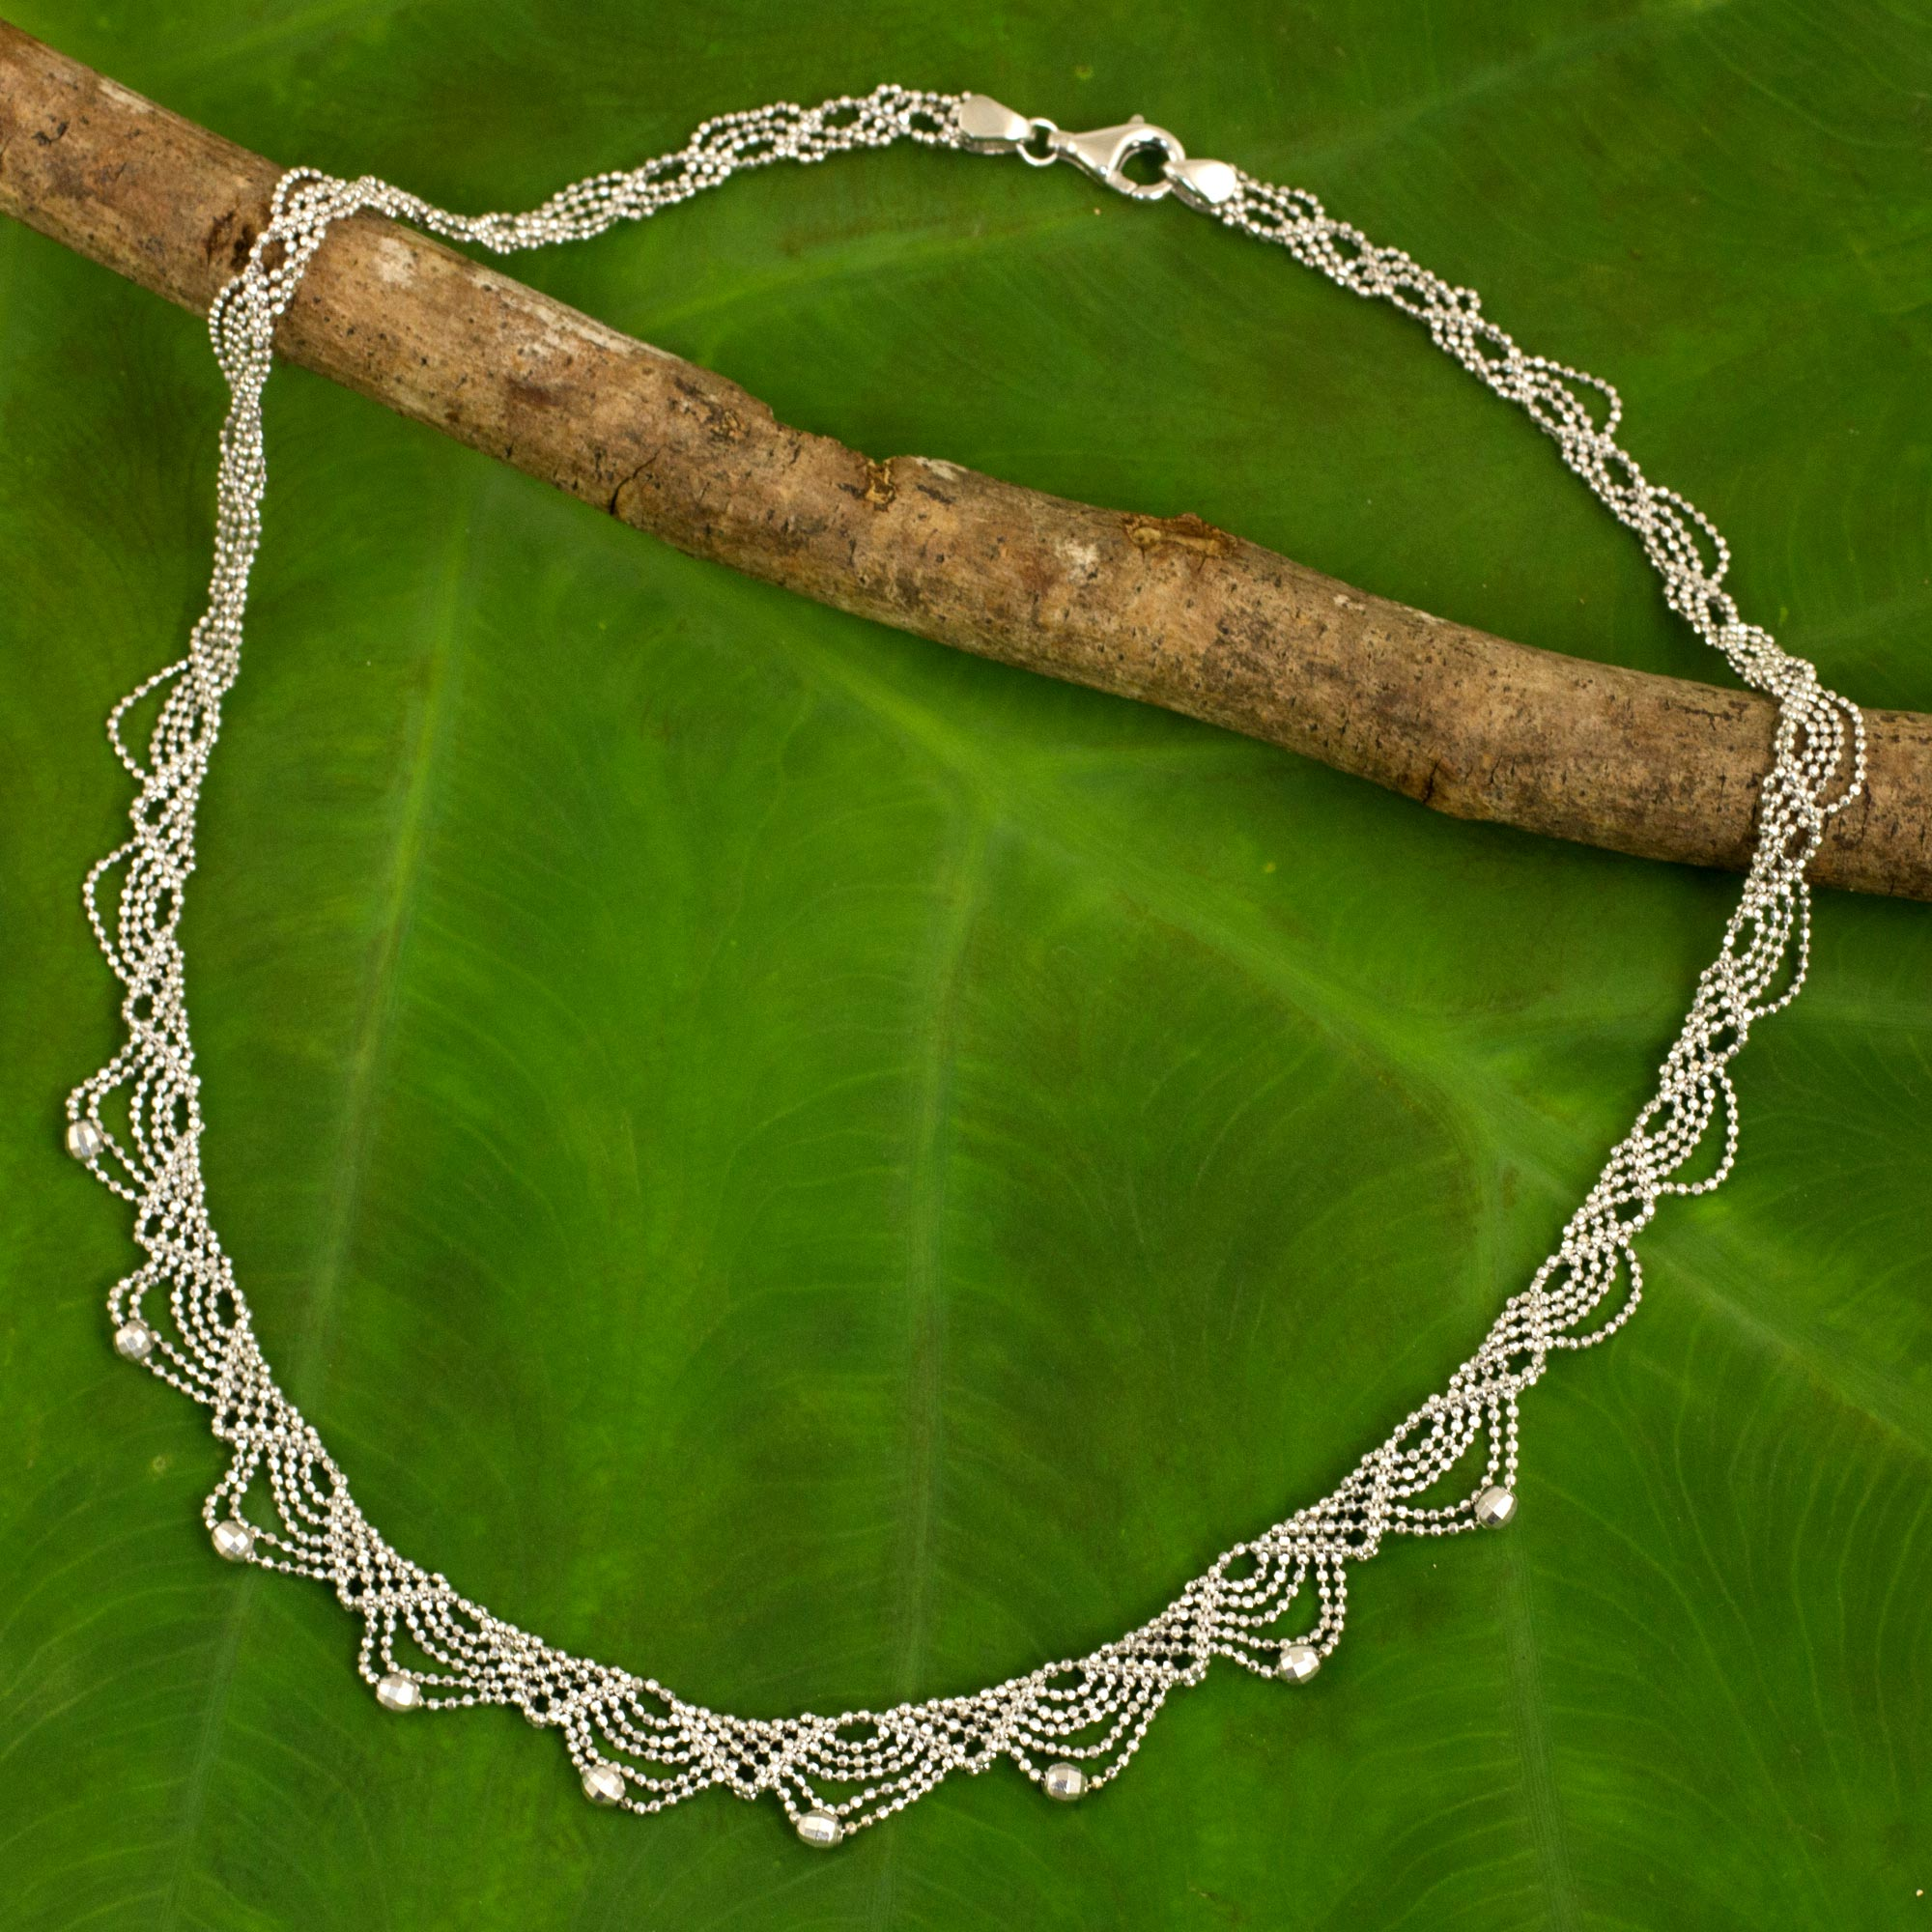 Collar Choker 16 inch Lacy Sterling Silver Necklace Crafted from Ball Chain, 'Deco Lace' NOVICA Fair Trade